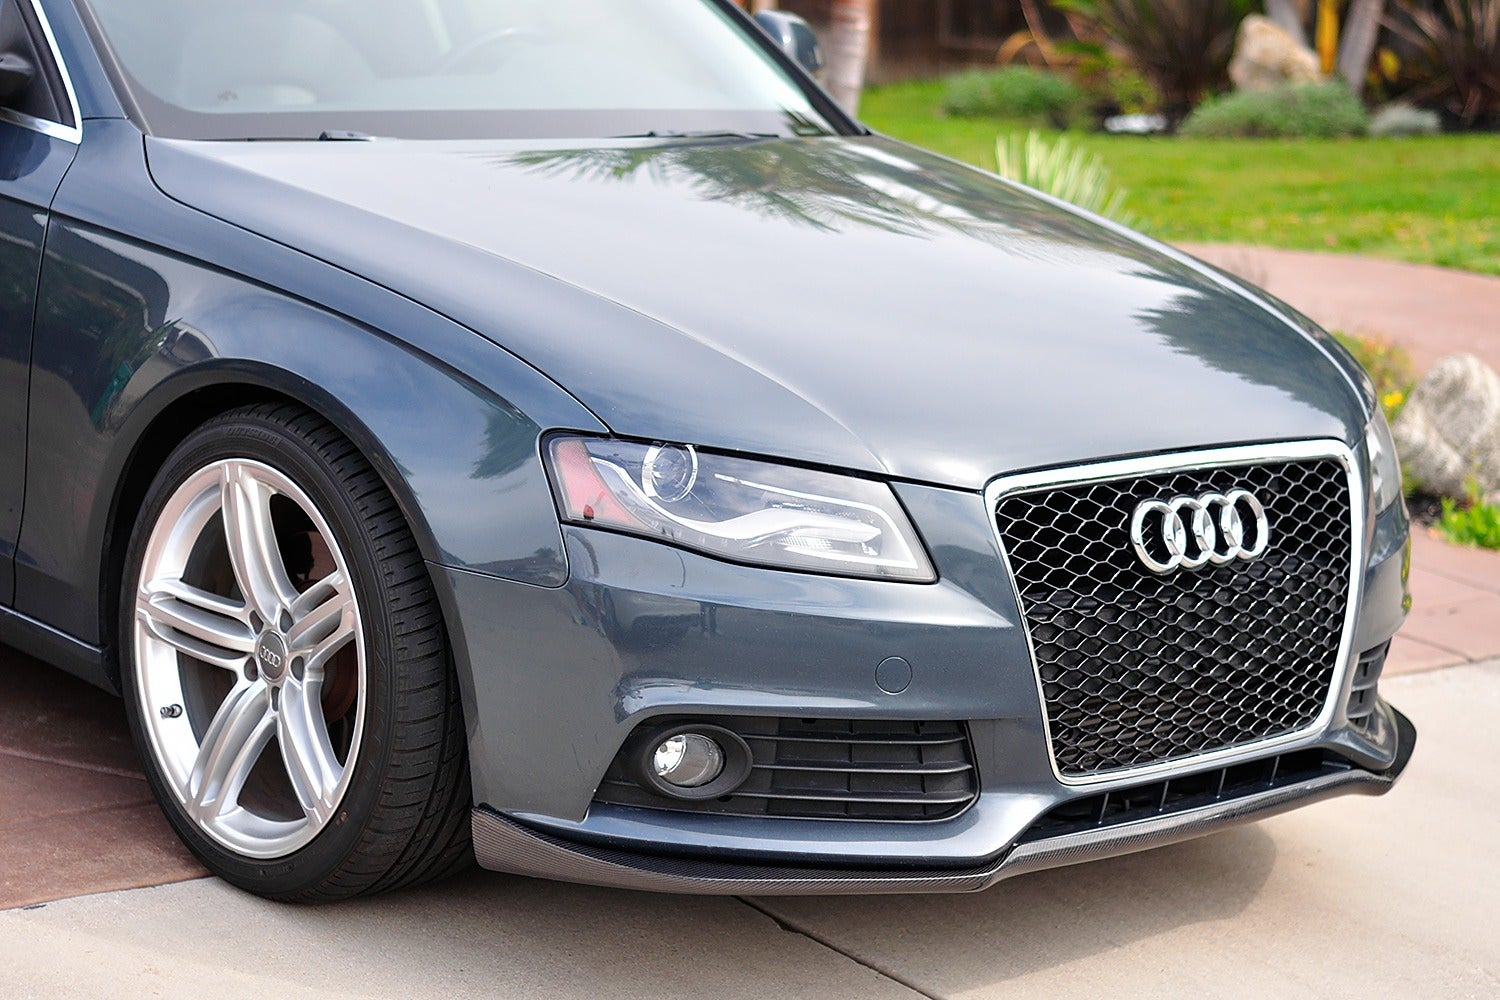 audi b8 a4 front spoiler lip on massdrop. Black Bedroom Furniture Sets. Home Design Ideas